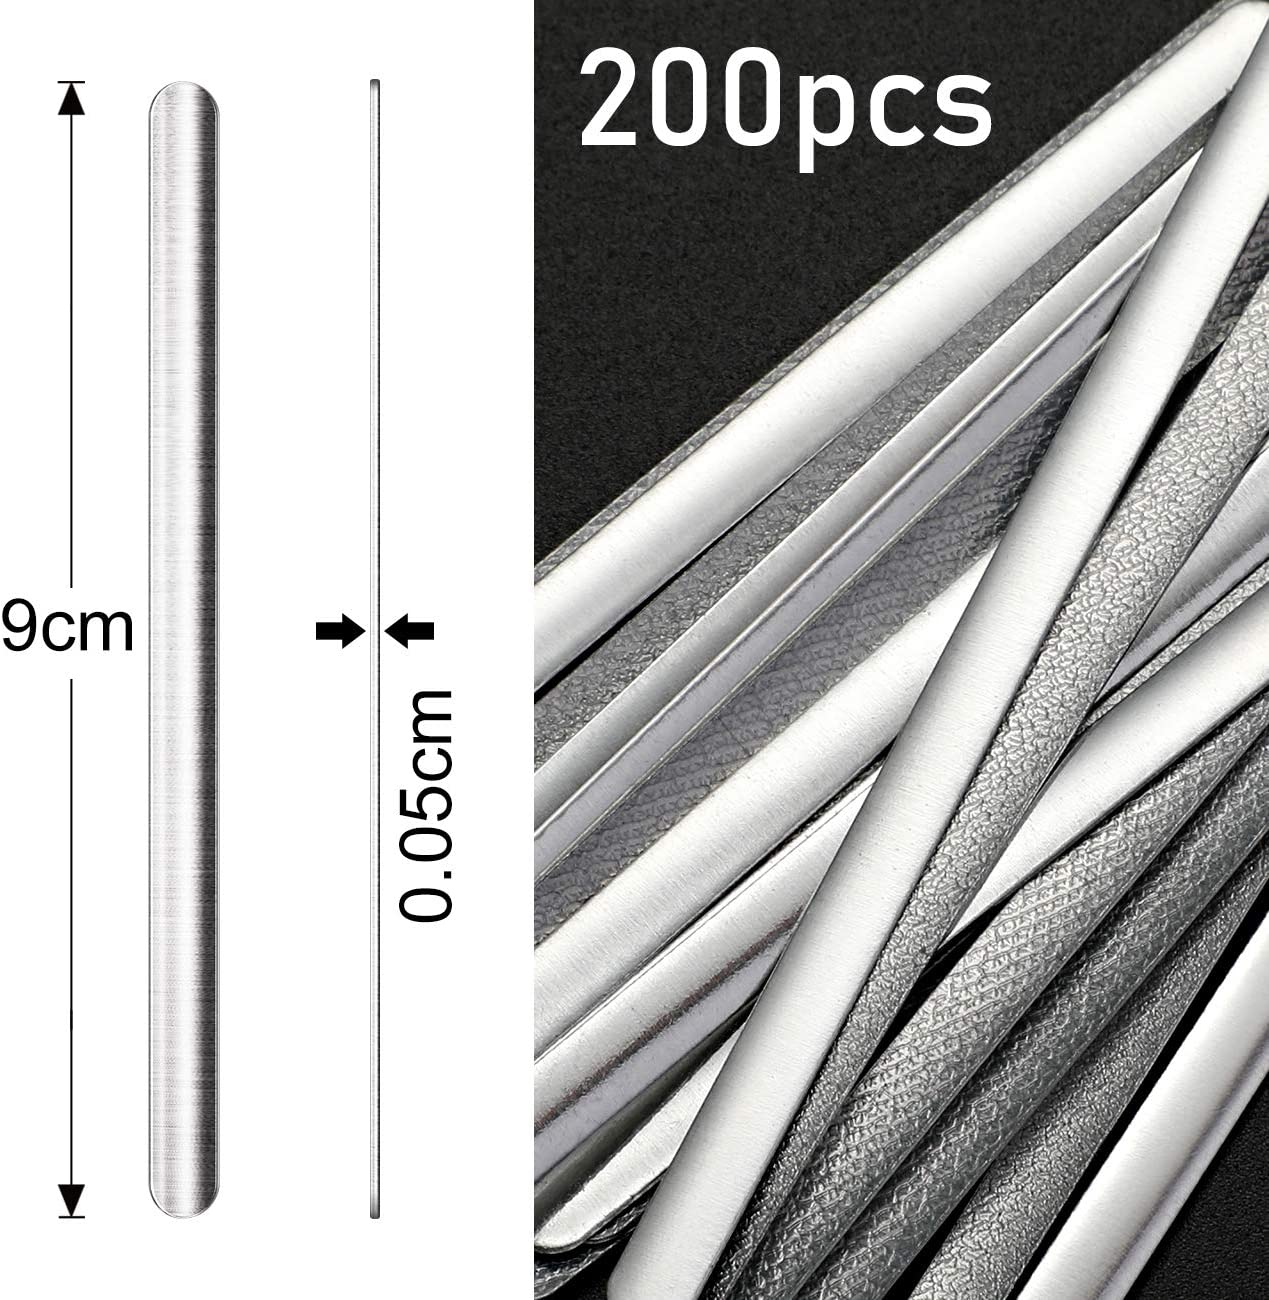 90 mm x 5 mm, 200 Pieces Homealexa Aluminum Strips for Nasal Bridge 200 Pieces Metal Nose Support Without Adhesives DIY Accessories